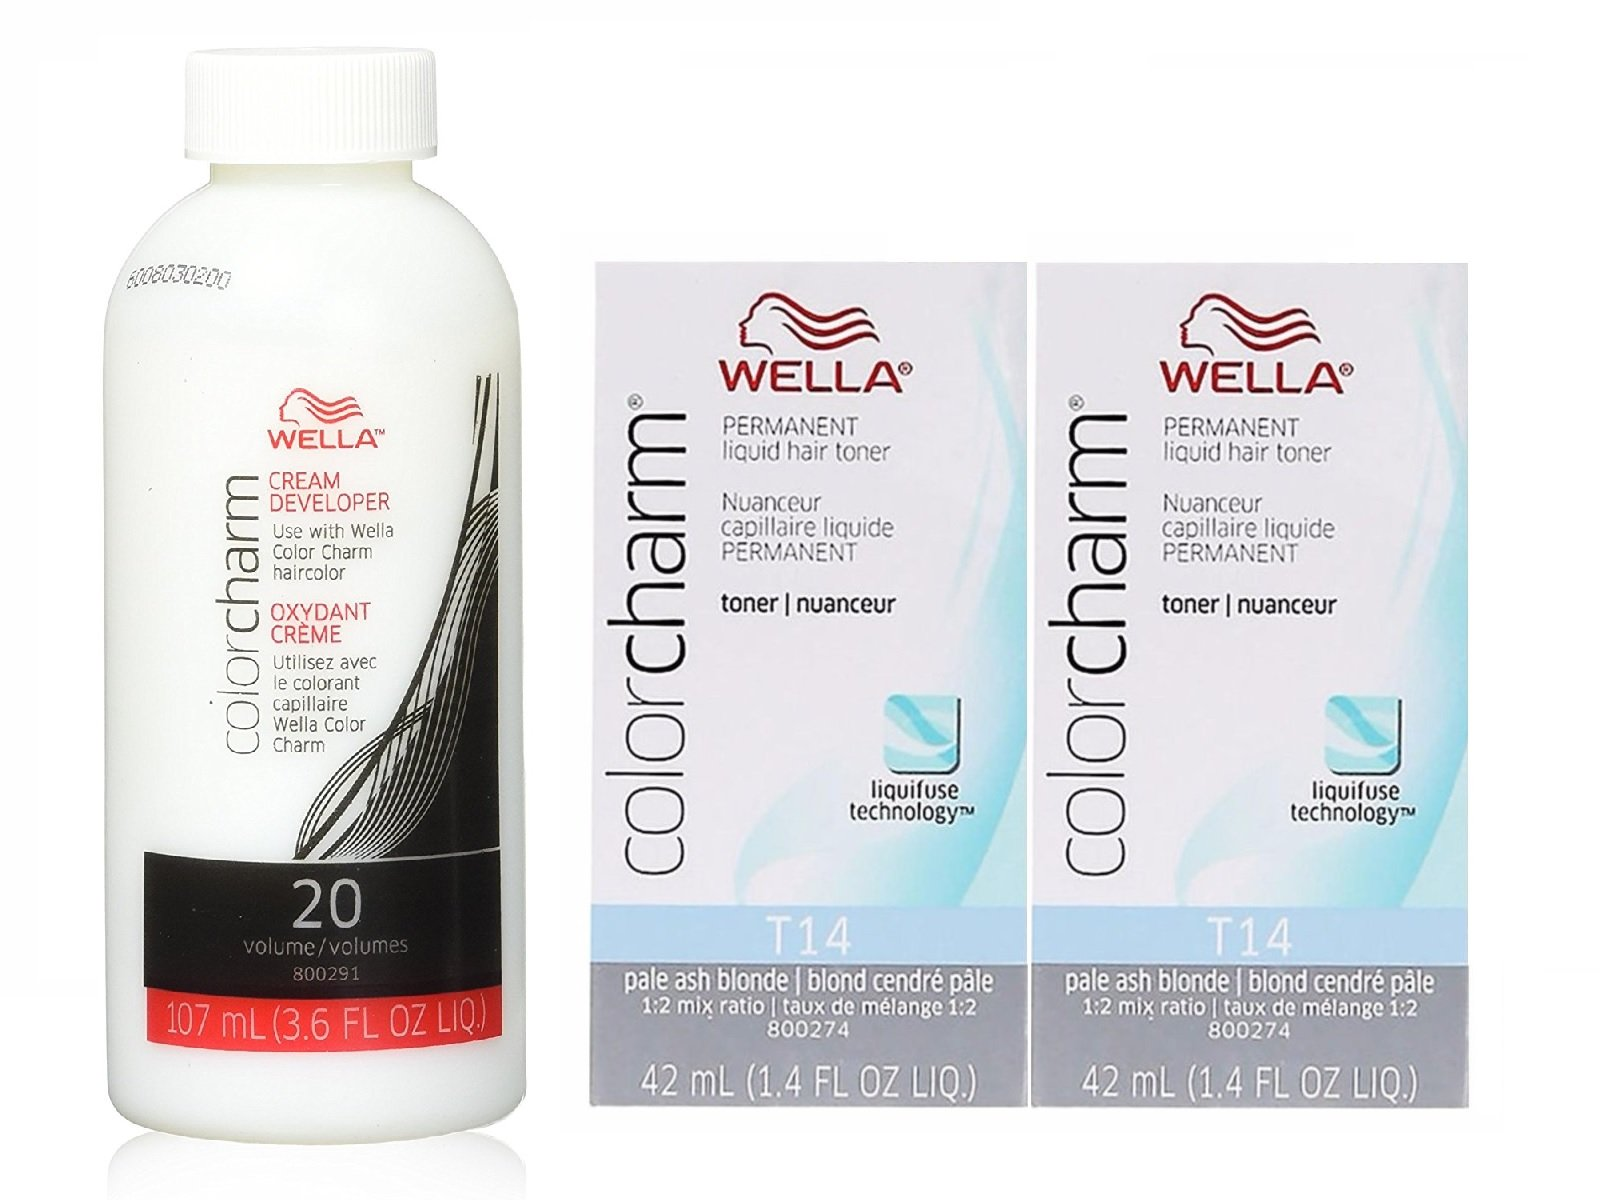 Wella Color Charm T14 Pale Ash Blonde 2-Pack with CC Cream 20 Developer 3.6 oz. - COMBO DEAL!